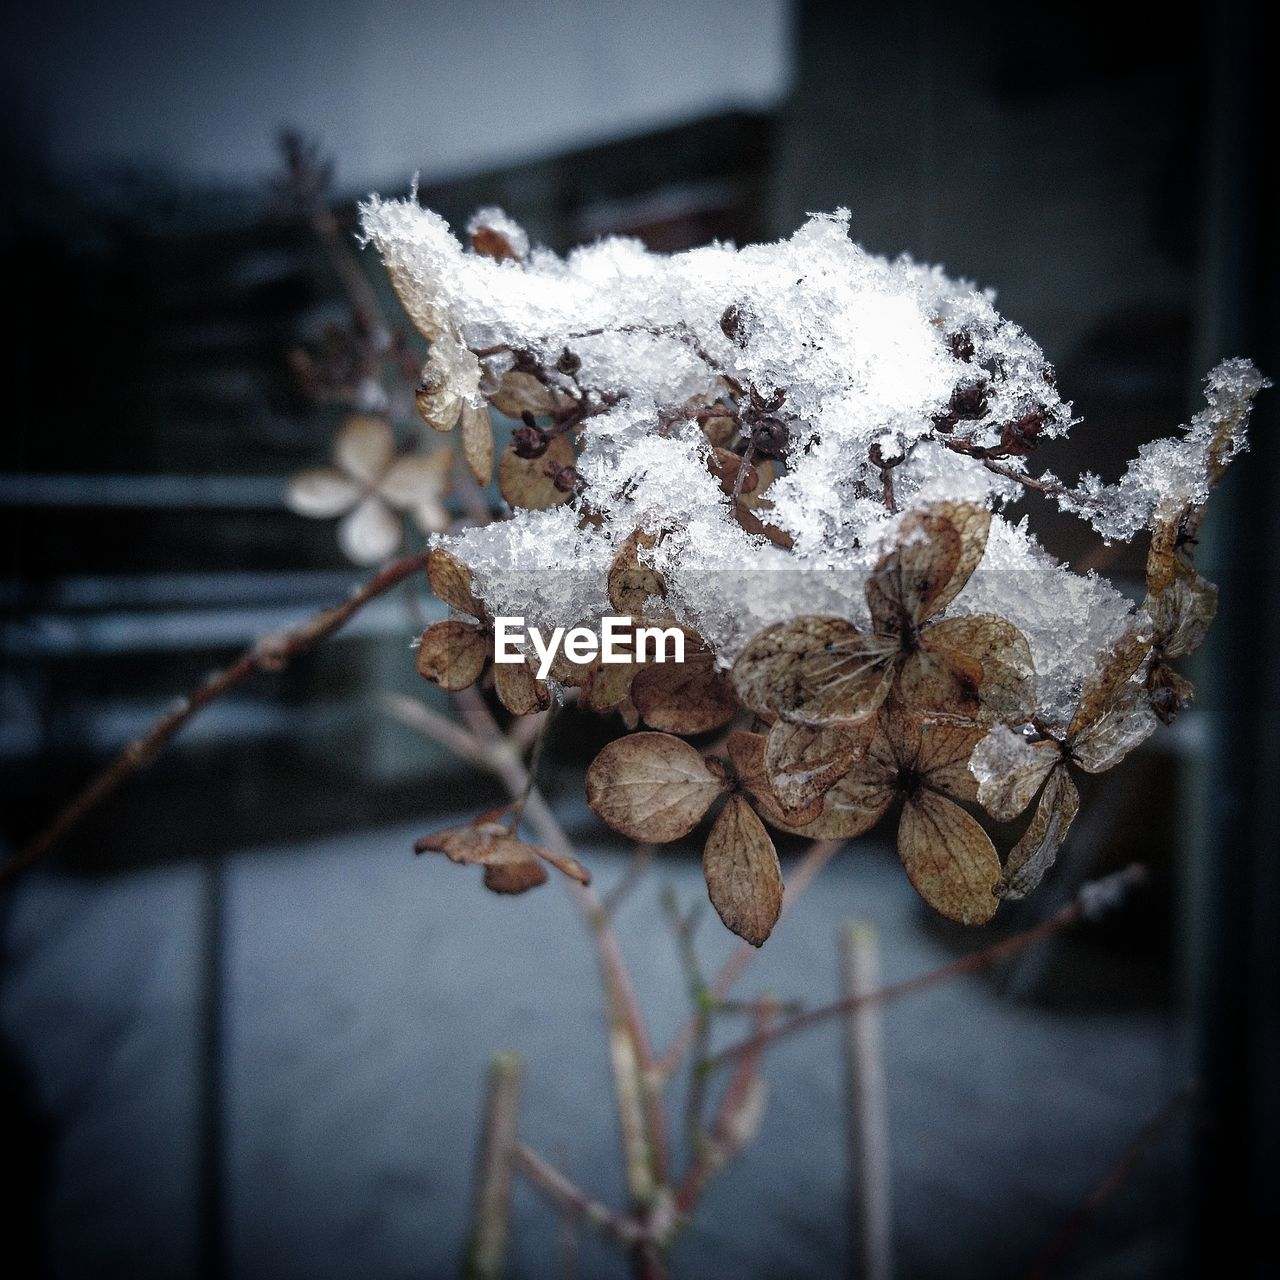 winter, cold temperature, snow, focus on foreground, nature, close-up, weather, white color, no people, frozen, beauty in nature, outdoors, day, dried plant, growth